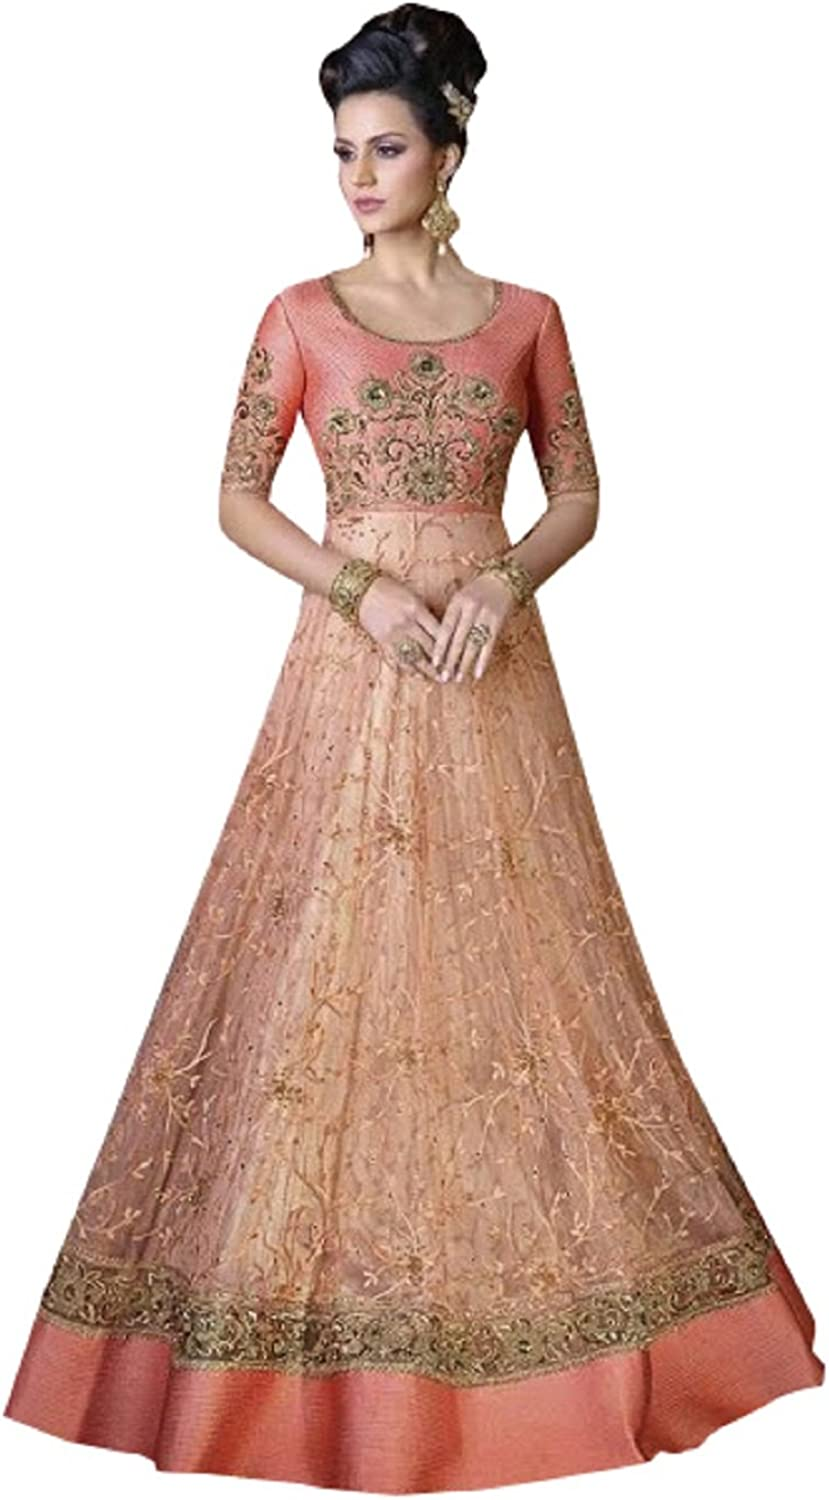 Amazon Com Designer Party Wear Gown Long Dress Bollywood Indian Ethnic Wedding Women Muslim Bridal Embroidery Zari Work 640 Peach Clothing,Princess Wedding Dresses With Long Trains And Veils